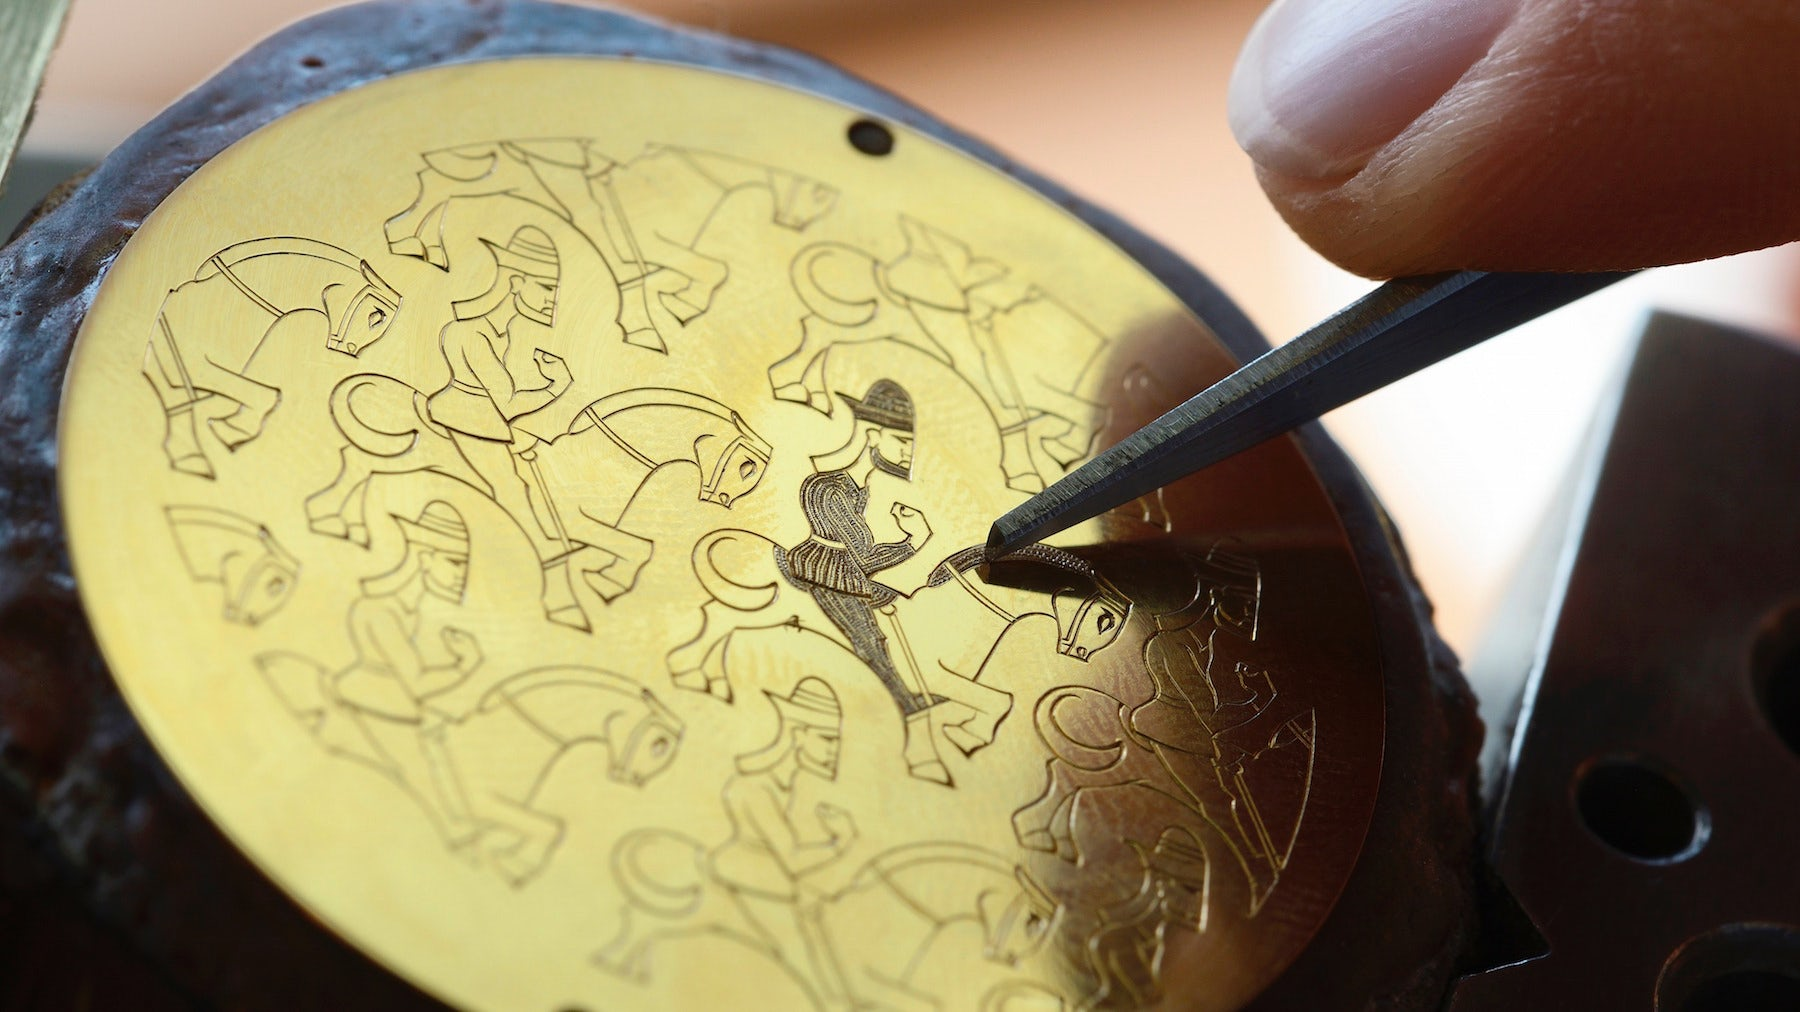 A Vacheron Constantin engraving in progress | Source: London Craft Week